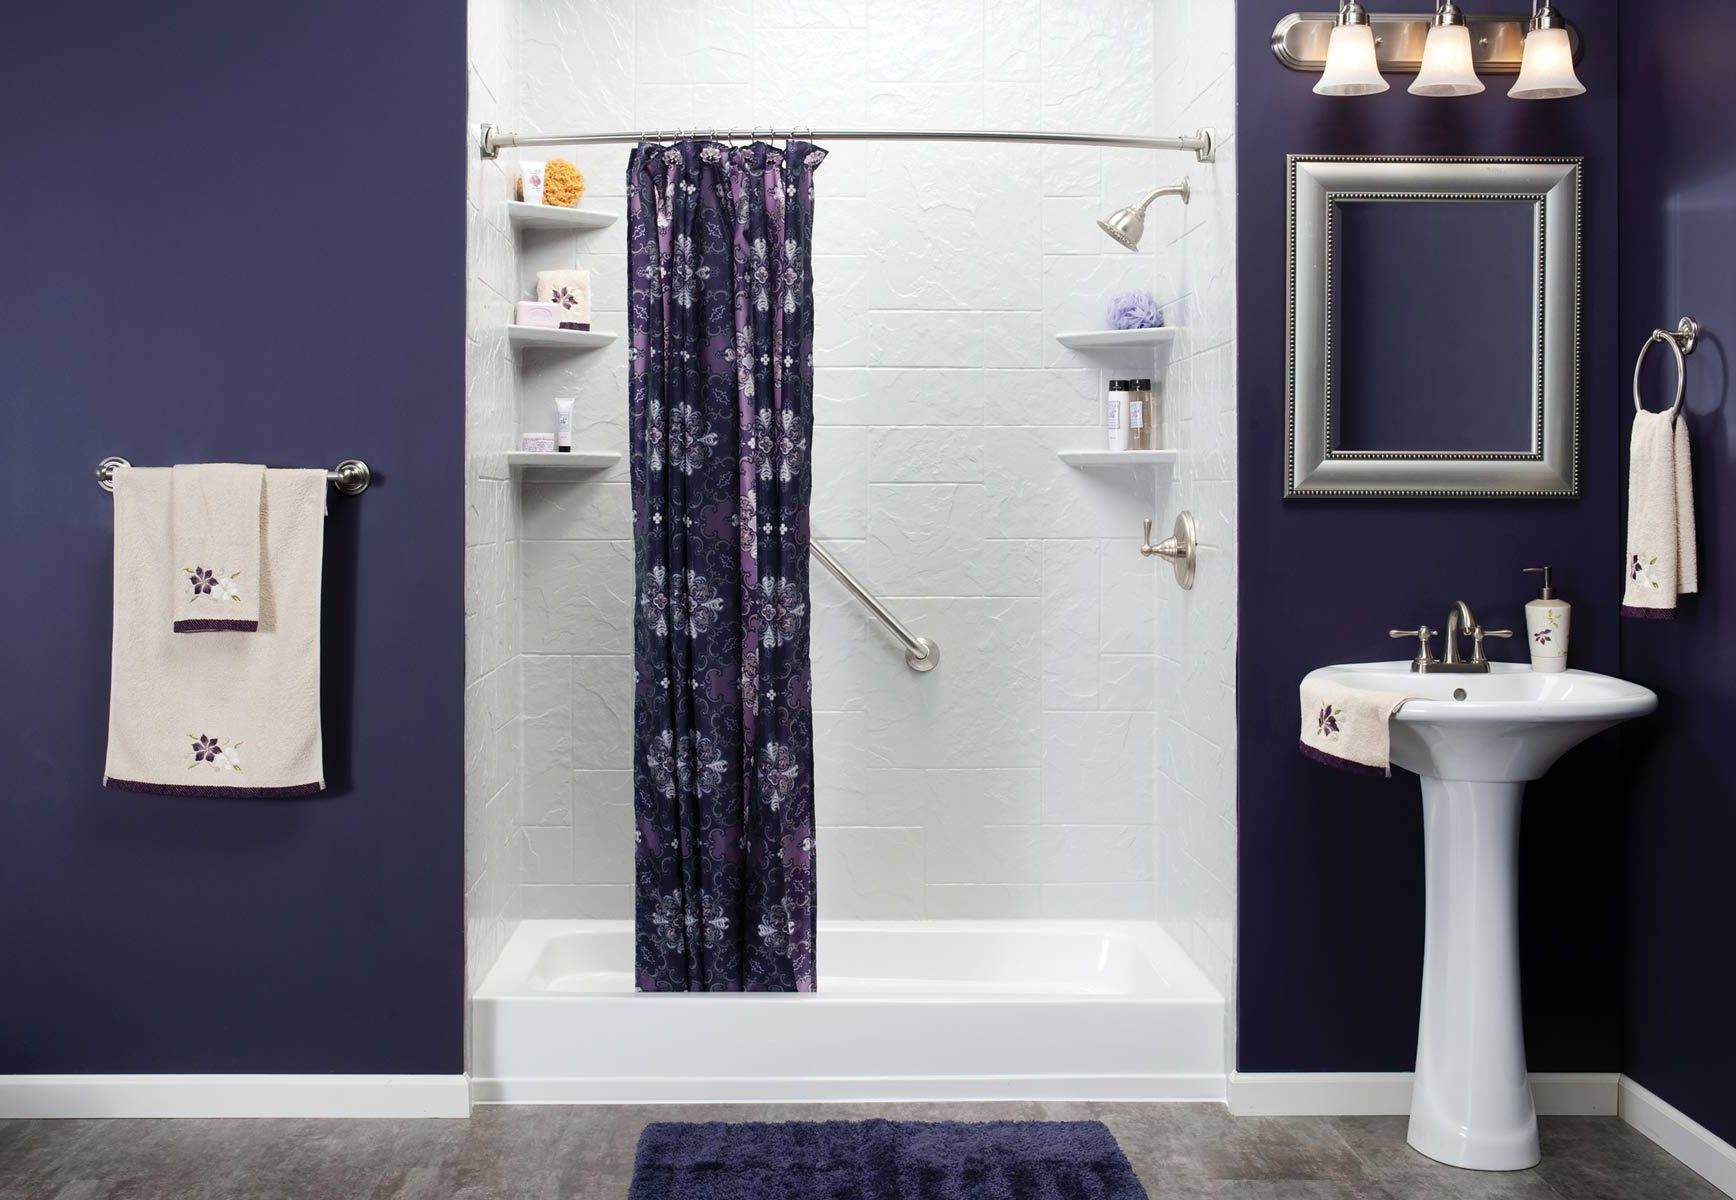 Dark violet | Bathrooms and Laundry Rooms | Pinterest | Dark purple ...